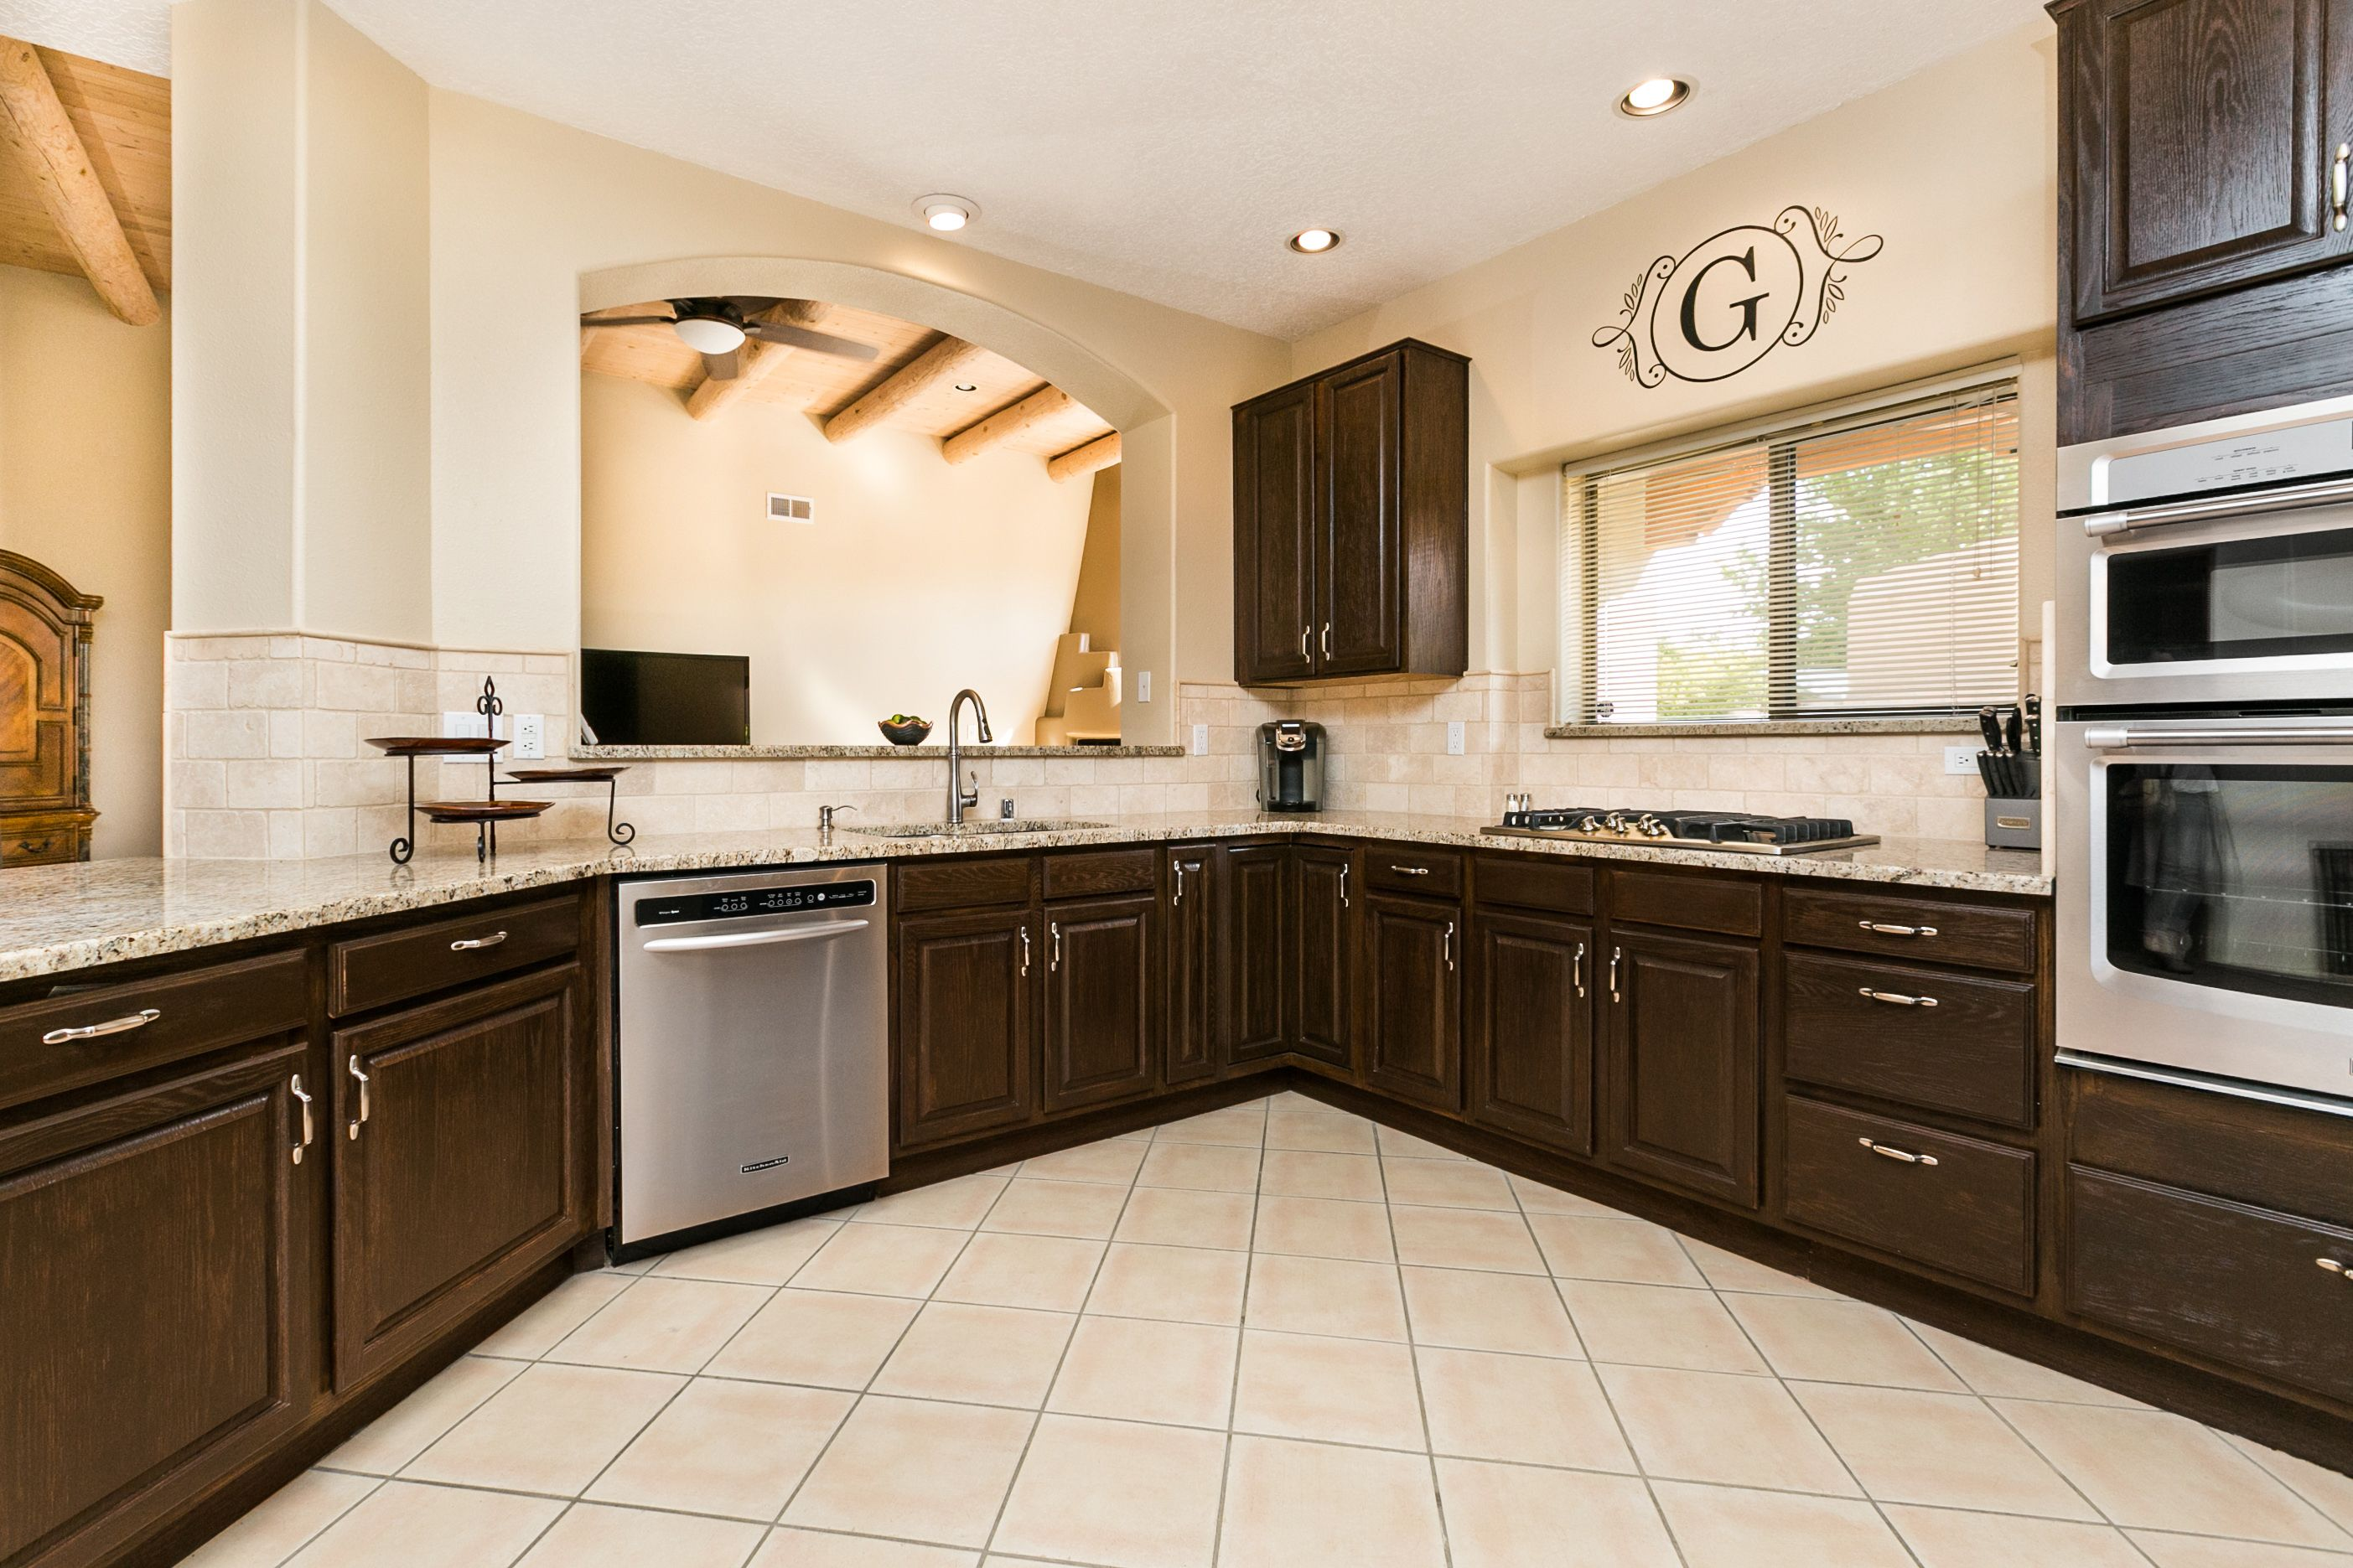 Griego Residence Albuquerque Kitchen Remodel Design Alliance Inc Beautiful Kitchen Cabinets Countertop Design Kitchen Remodel Design